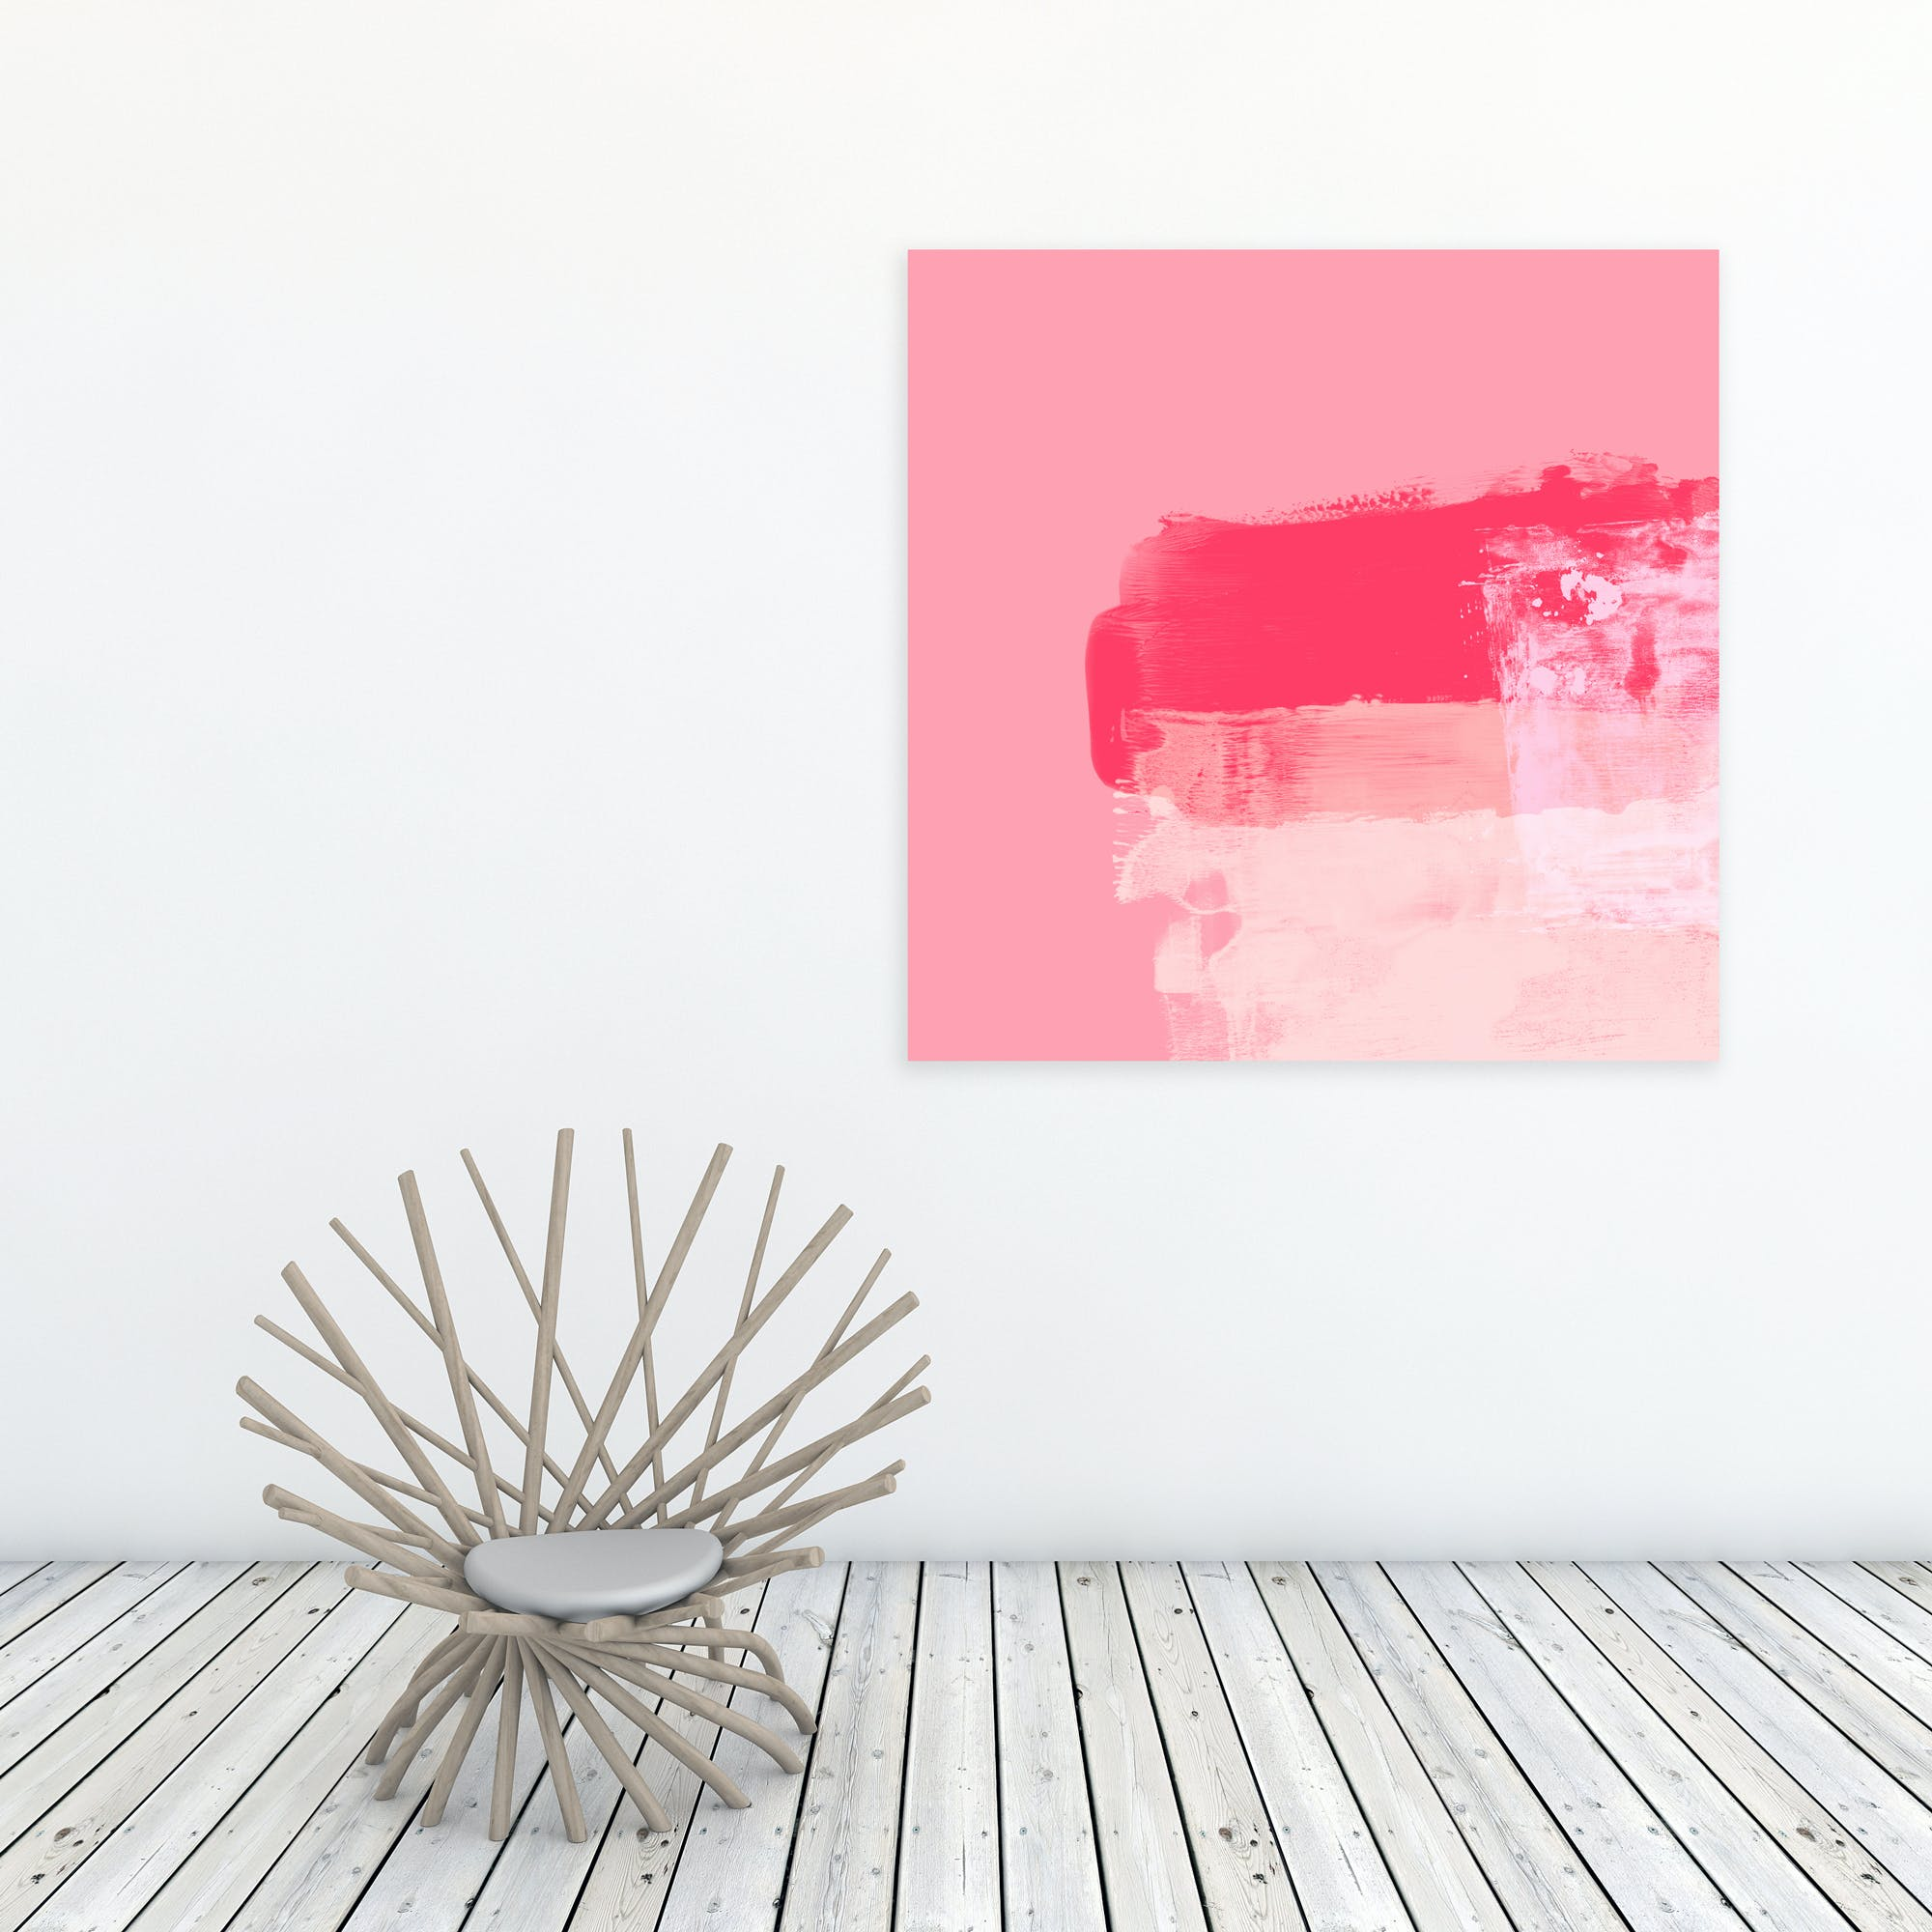 Minimalistic ExpressiveAbstract In Pink Art Print